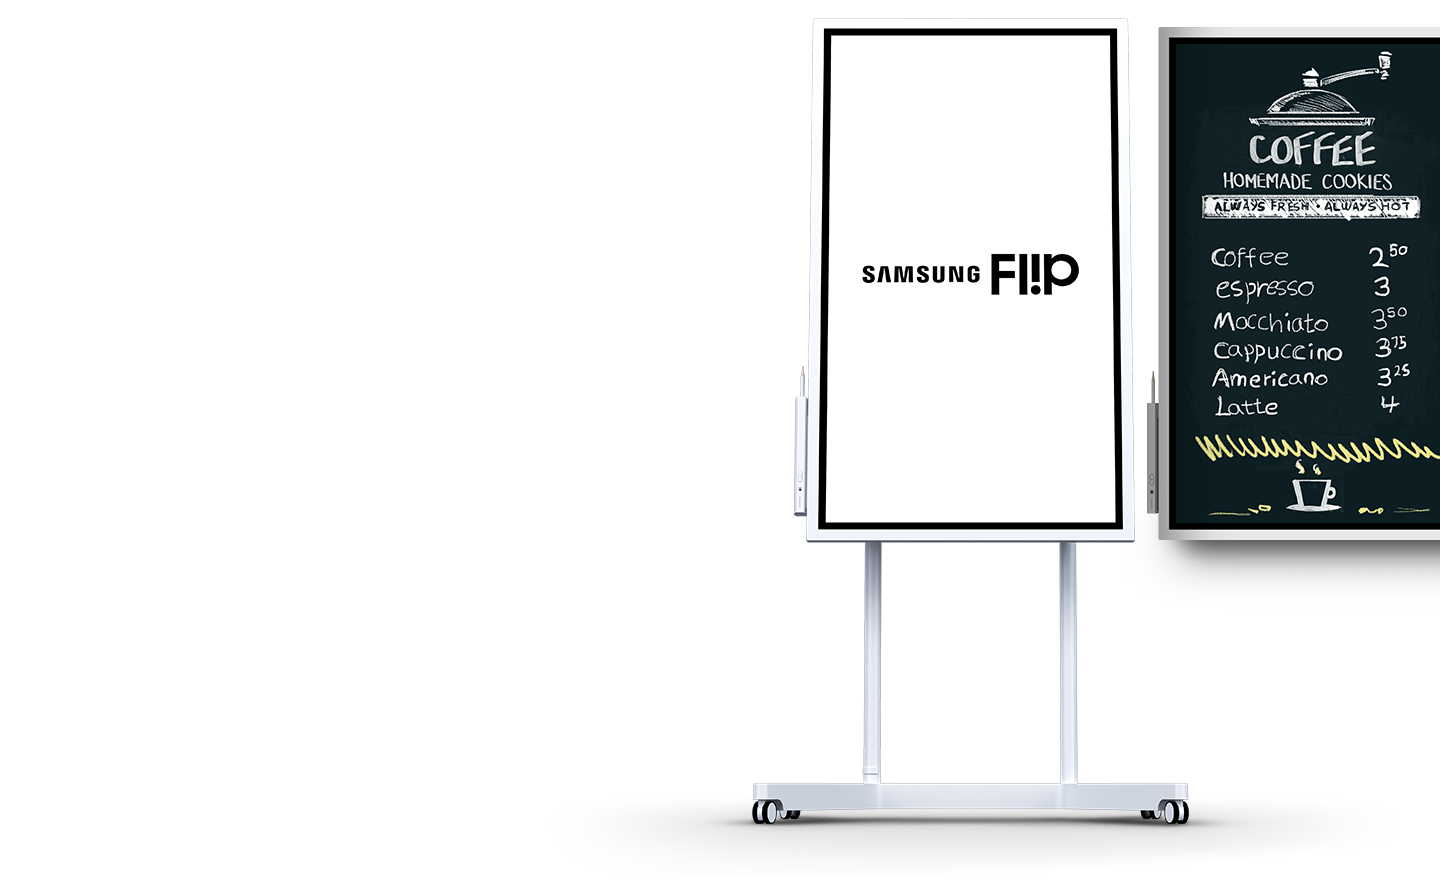 To the left, a stand-up Flip displays the Samsung Flip logo, while a wall-mounted Flip display unit on the right shows a coffee shop menu.